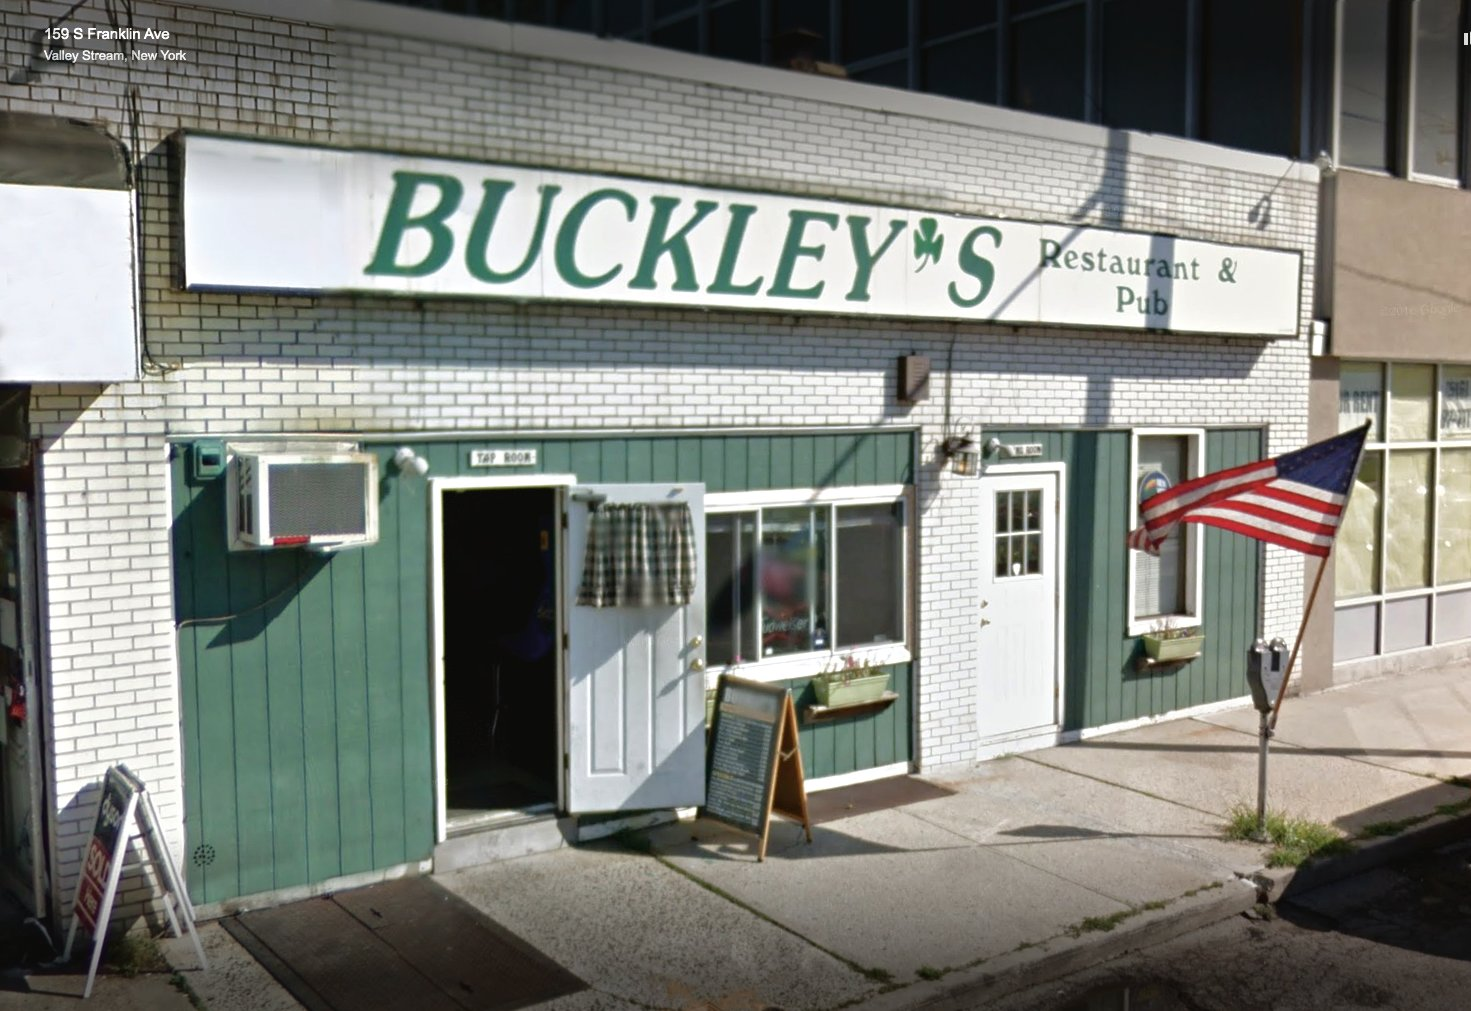 Buckley's Restaurant and Pub has been a part of the Valley Stream community since 1969.